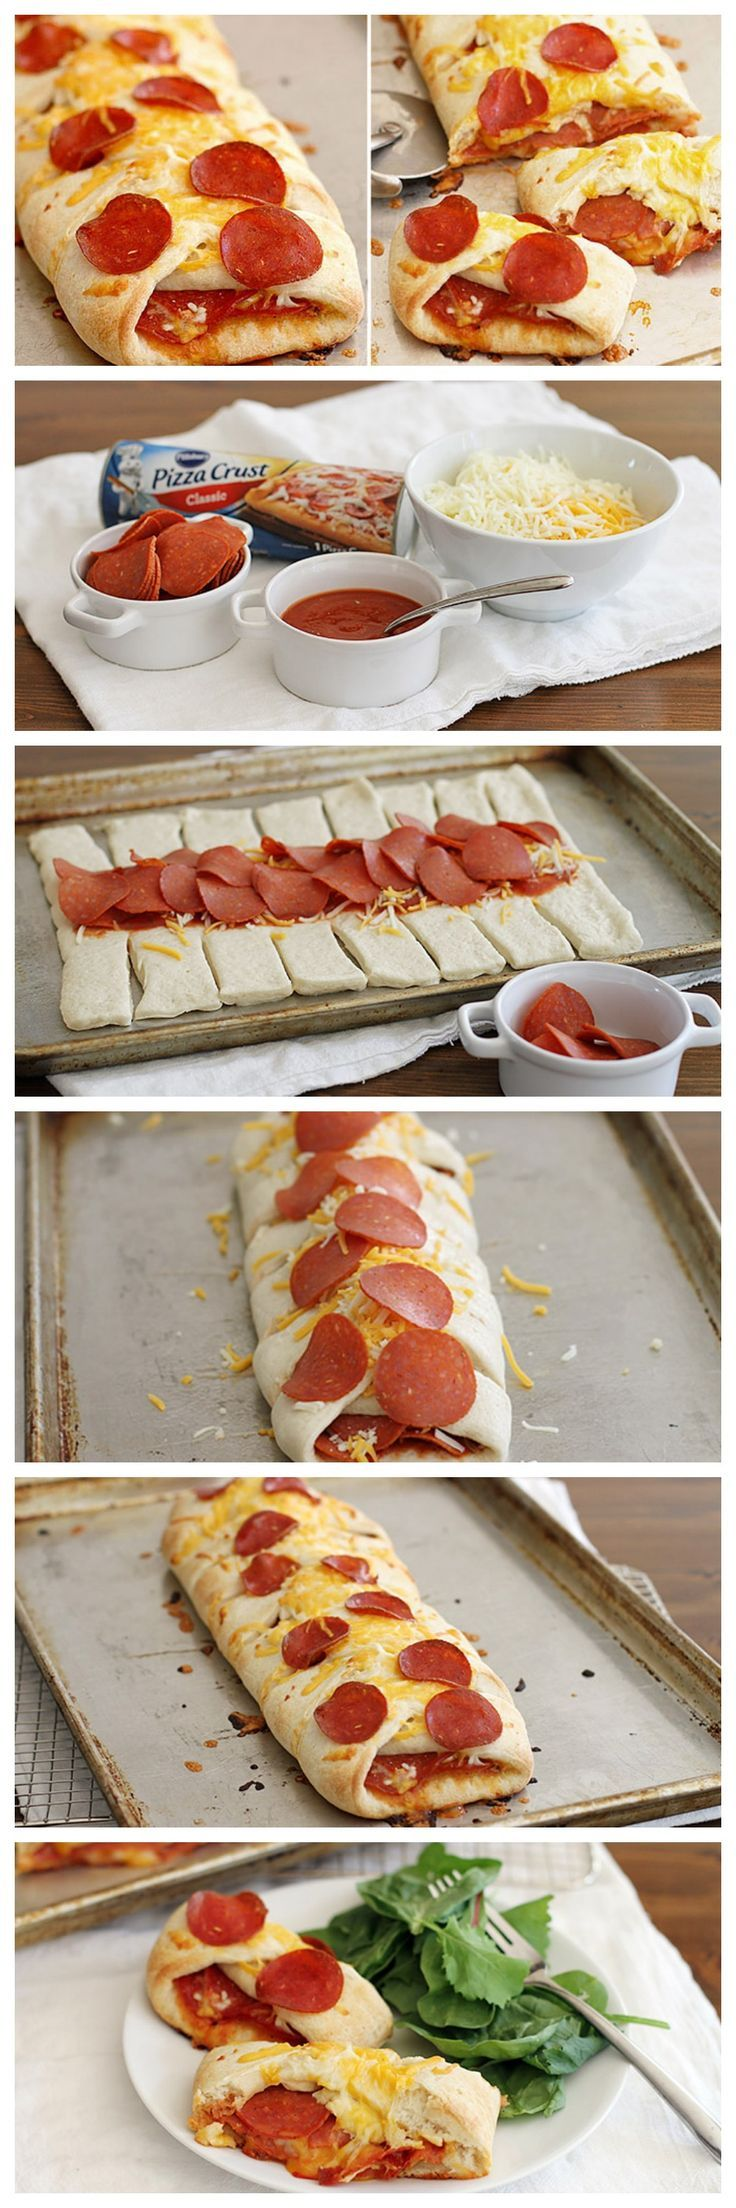 Pepperoni Pizza Braid is another fun way to do Friday Night Pizza Night right! #Pepperoni #Pizza #Braid #recipe